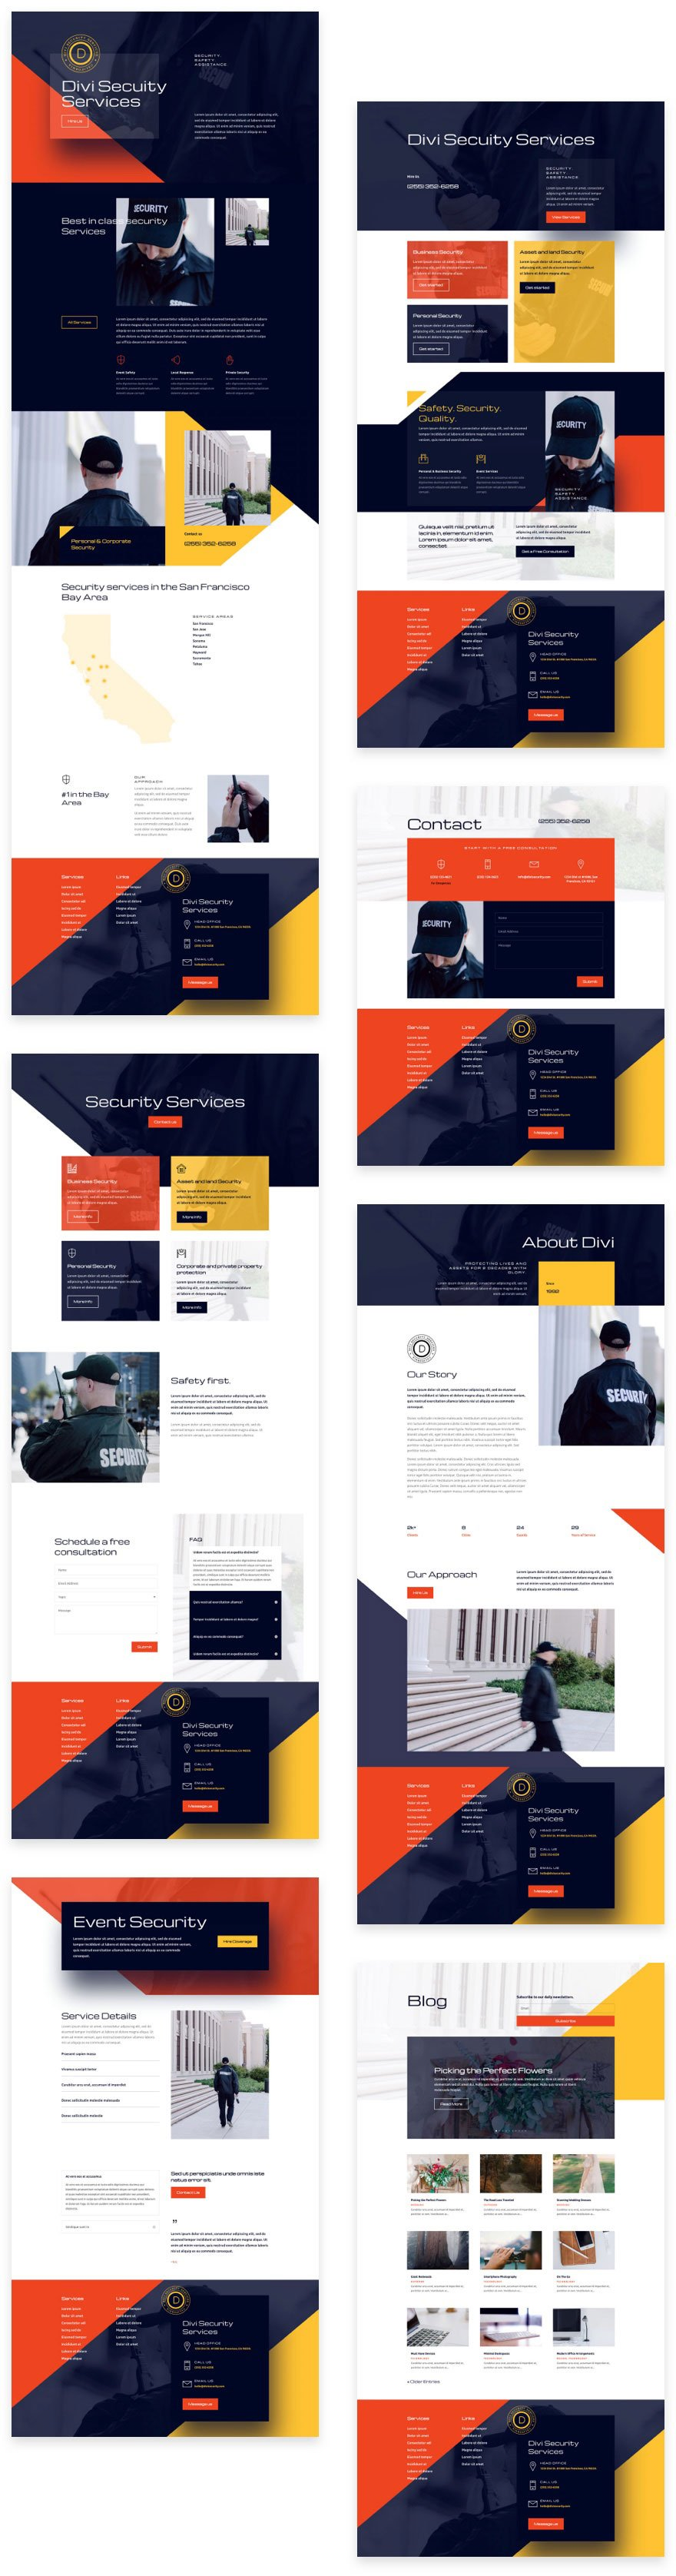 security services layout pack